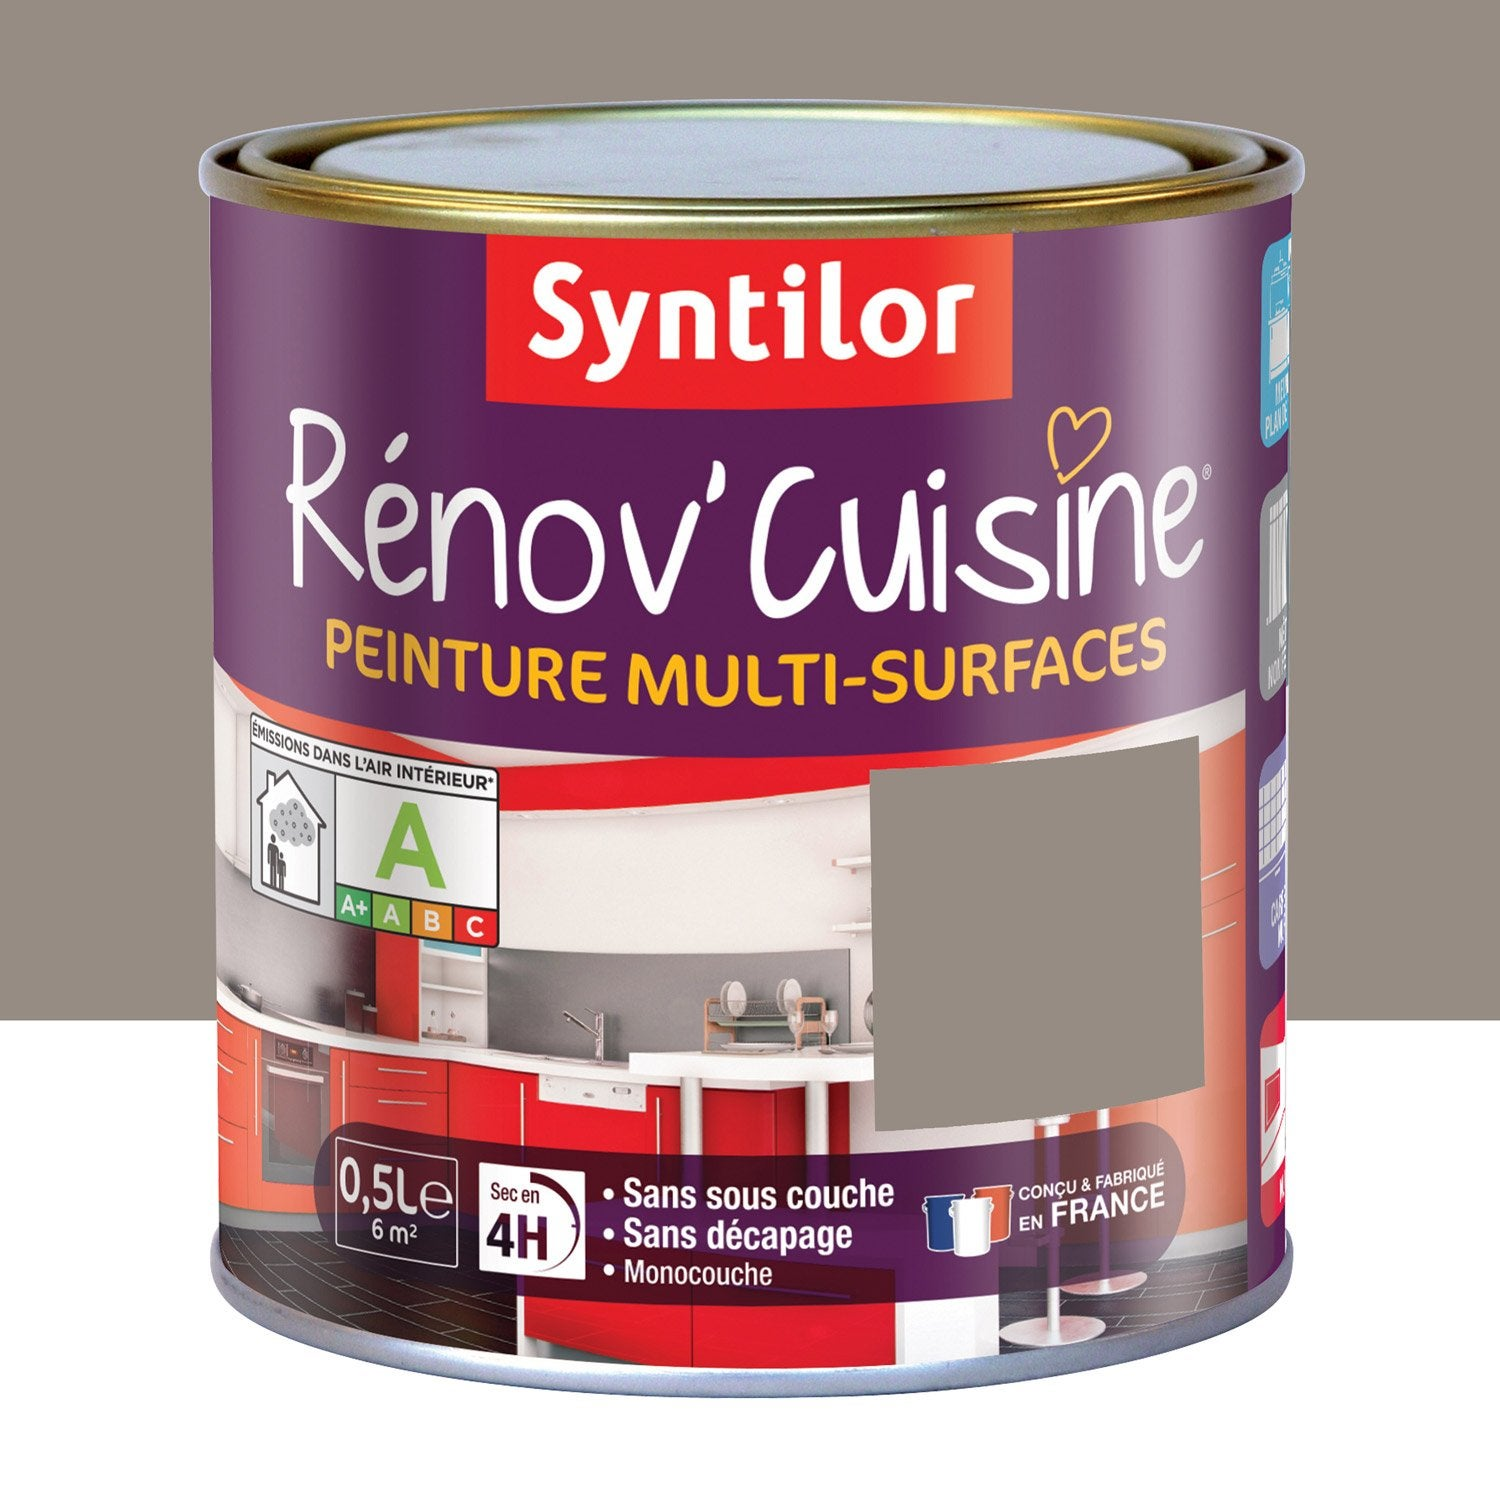 Peinture de r novation r nov 39 cuisine syntilor macaron 0 5 l leroy merlin for Peinture de renovation v